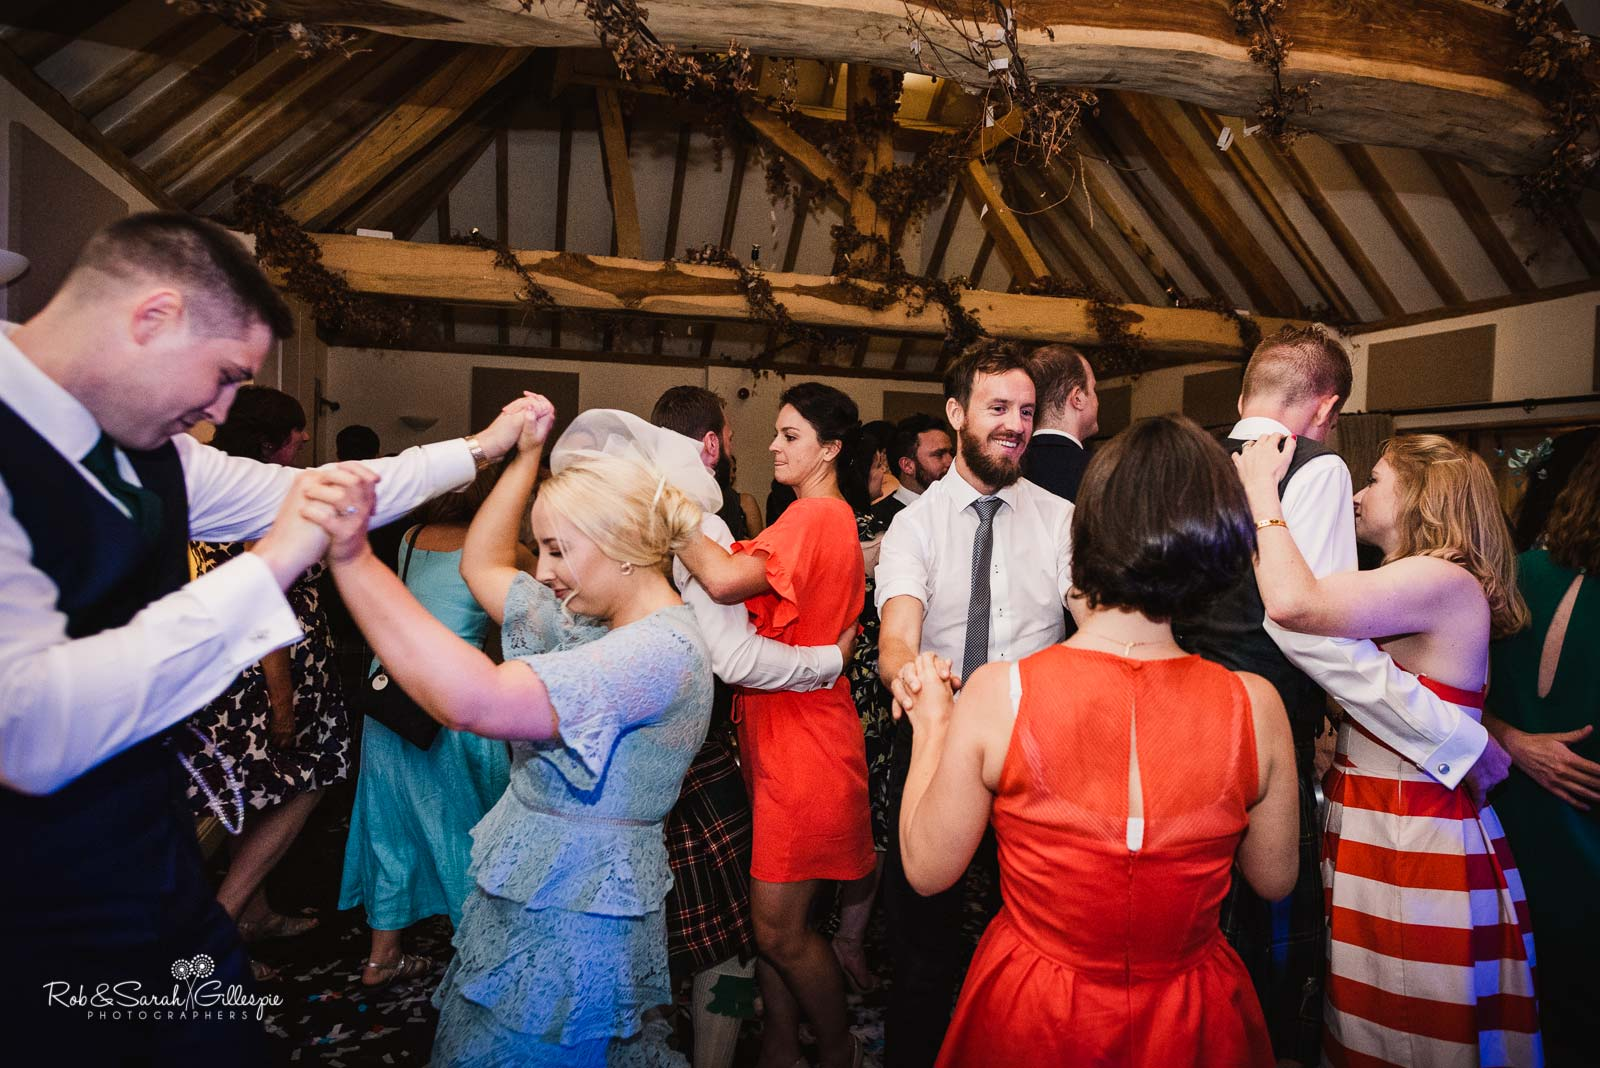 Wedding guests dancing at Wethele Manor